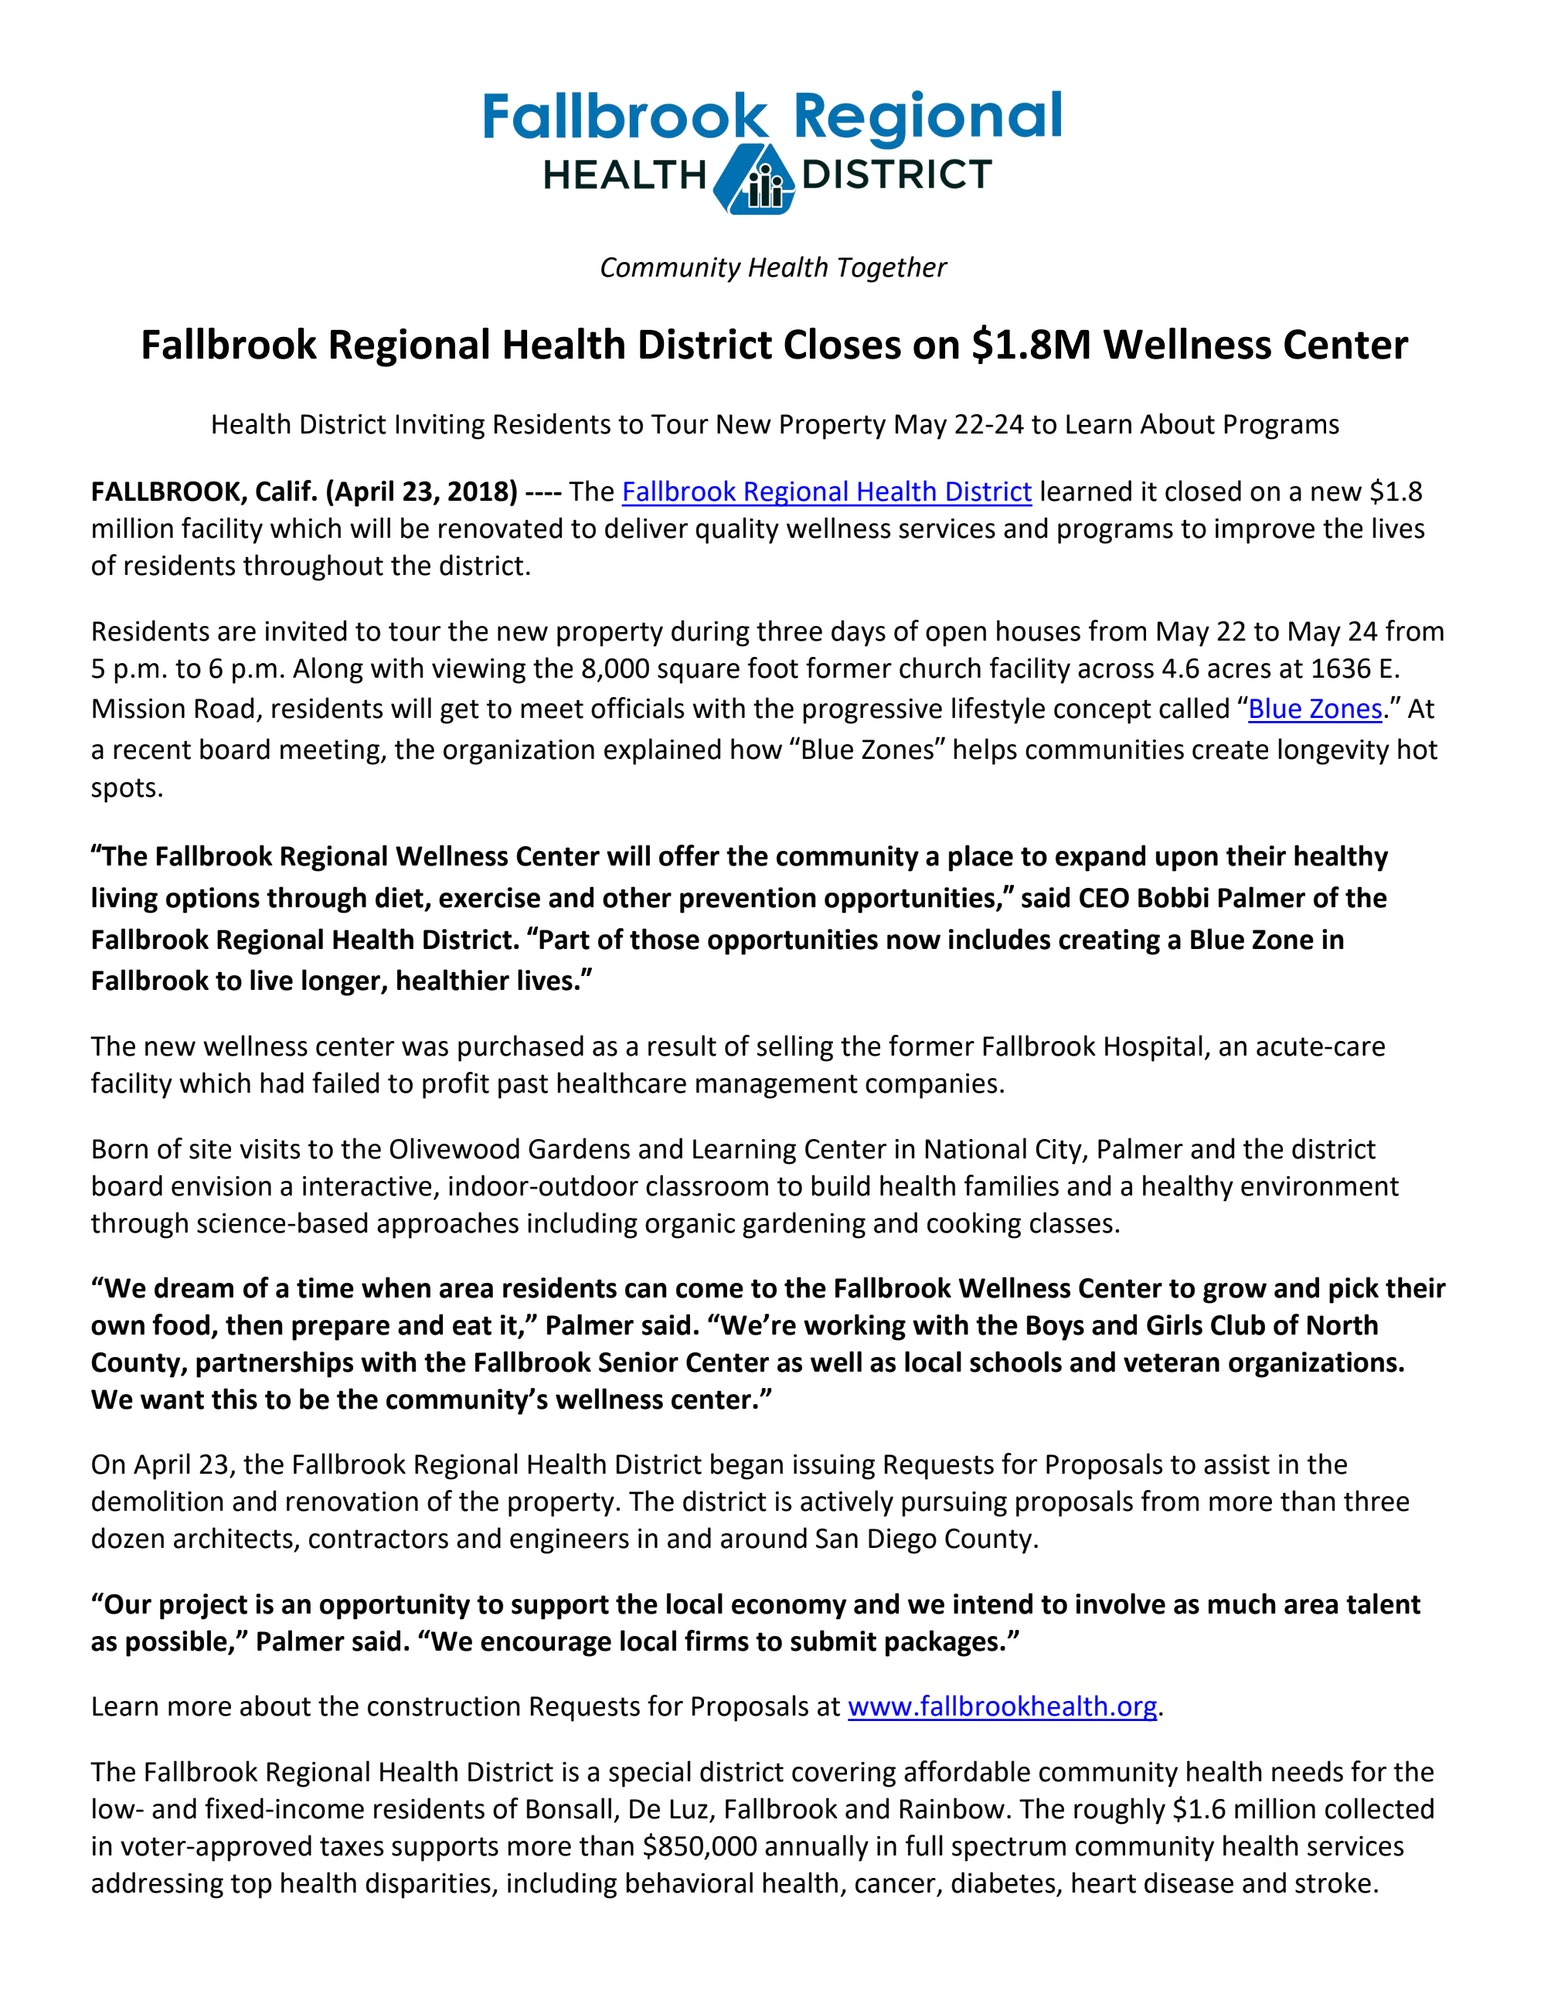 "Fallbrook Regional Health District Closes on $1.8M Wellness Center Health District Inviting Residents to Tour New Property May 22-24 to Learn About Programs FALLBROOK, Calif. (April 23, 2018) ---- The Fallbrook Regional Health District learned it closed on a new $1.8 million facility which will be renovated to deliver quality wellness services and programs to improve the lives of residents throughout the district. Residents are invited to tour the new property during three days of open houses from May 22 to May 24 from 5 p.m. to 6 p.m. Along with viewing the 8,000 square foot former church facility across 4.6 acres at 1636 E. Mission Road, residents will get to meet officials with the progressive lifestyle concept called ""Blue Zones."" At a recent board meeting, the organization explained how ""Blue Zones"" helps communities create longevity hot spots. ""The Fallbrook Regional Wellness Center will offer the community a place to expand upon their healthy living options through diet, exercise and other prevention opportunities,"" said CEO Bobbi Palmer of the Fallbrook Regional Health District. ""Part of those opportunities now includes creating a Blue Zone in Fallbrook to live longer, healthier lives."" The new wellness center was purchased as a result of selling the former Fallbrook Hospital, an acute-care facility which had failed to profit past healthcare management companies. Born of site visits to the Olivewood Gardens and Learning Center in National City, Palmer and the district board envision a interactive, indoor-outdoor classroom to build health families and a healthy environment through science-based approaches including organic gardening and cooking classes. ""We dream of a time when area residents can come to the Fallbrook Wellness Center to grow and pick their own food, then prepare and eat it,"" Palmer said. ""We're working with the Boys and Girls Club of North County, partnerships with the Fallbrook Senior Center as well as local schools and veteran organizations. We want this to be the community's wellness center."" On April 23, the Fallbrook Regional Health District began issuing Requests for Proposals to assist in the demolition and renovation of the property. The district is actively pursuing proposals from more than three dozen architects, contractors and engineers in and around San Diego County. ""Our project is an opportunity to support the local economy and we intend to involve as much area talent as possible,"" Palmer said. ""We encourage local firms to submit packages."" Learn more about the construction Requests for Proposals at www.fallbrookhealth.org. The Fallbrook Regional Health District is a special district covering affordable community health needs for the low- and fixed-income residents of Bonsall, De Luz, Fallbrook and Rainbow. The roughly $1.6 million collected in voter-approved taxes supports more than $850,000 annually in full spectrum community health services addressing top health disparities, including behavioral health, cancer, diabetes, heart disease and stroke."